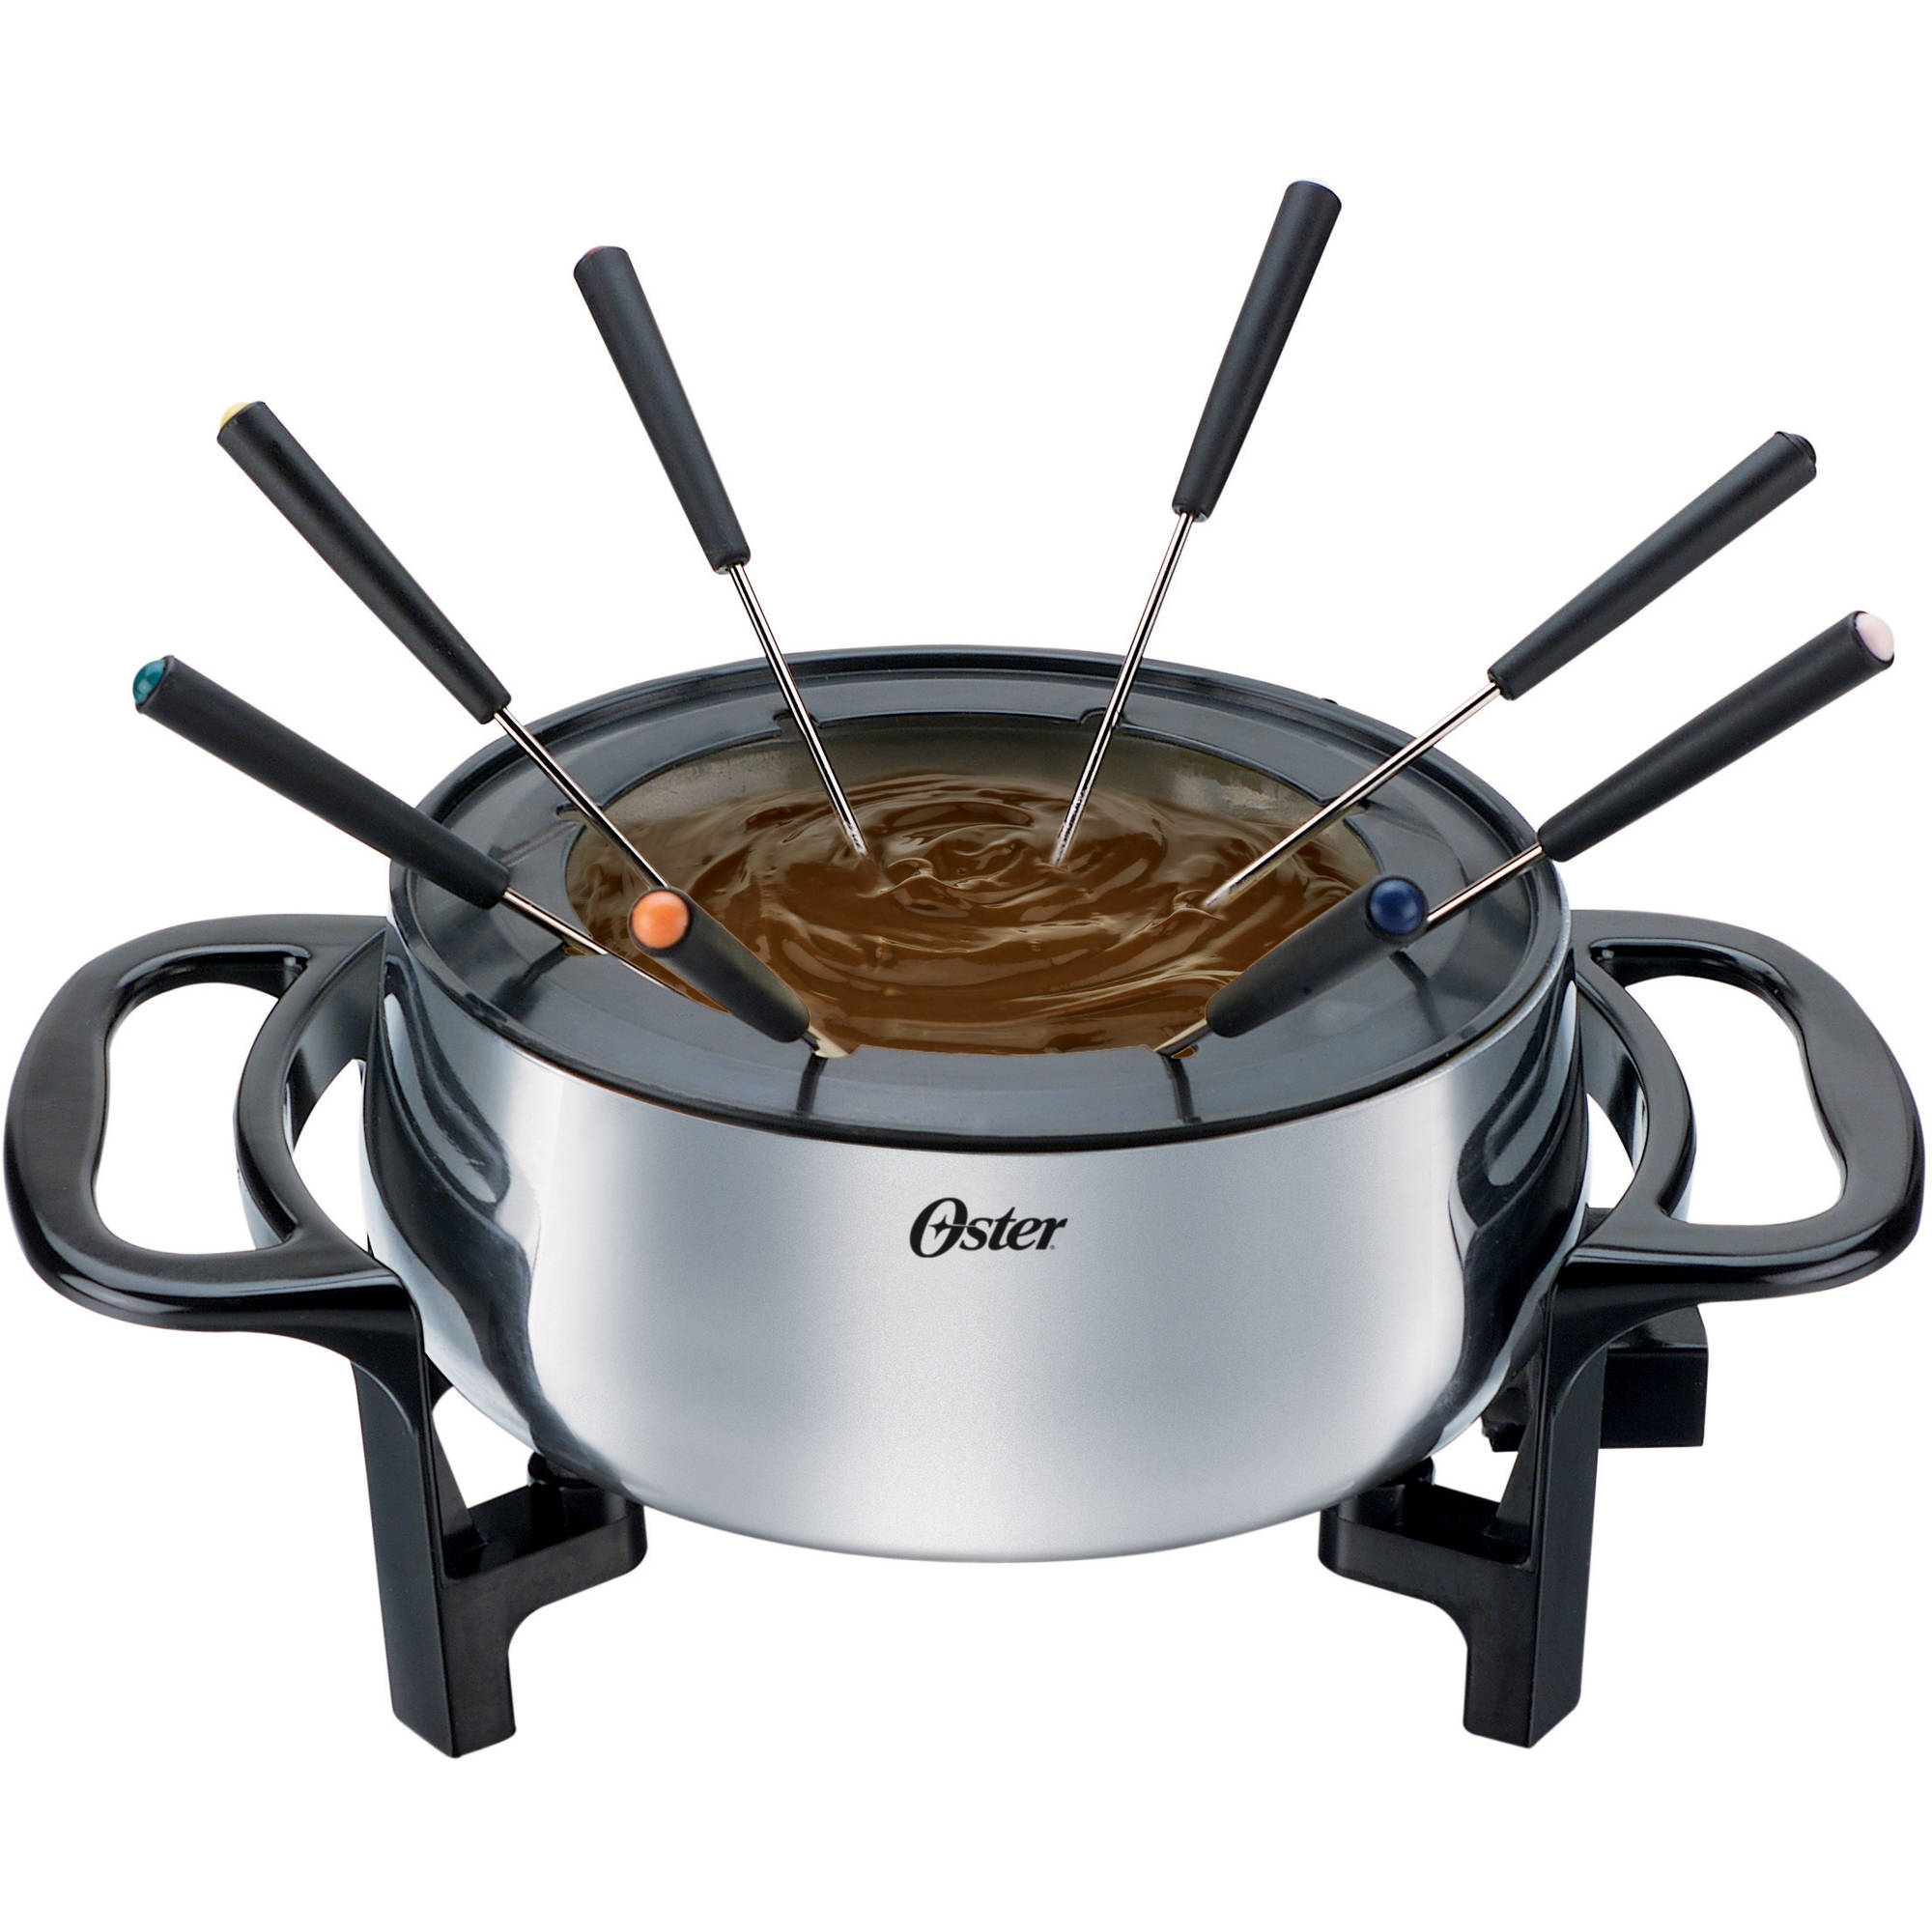 Oster FPSTFN7710 3-1/2 Quart Fondue Pot with Forks, Stainless Steel